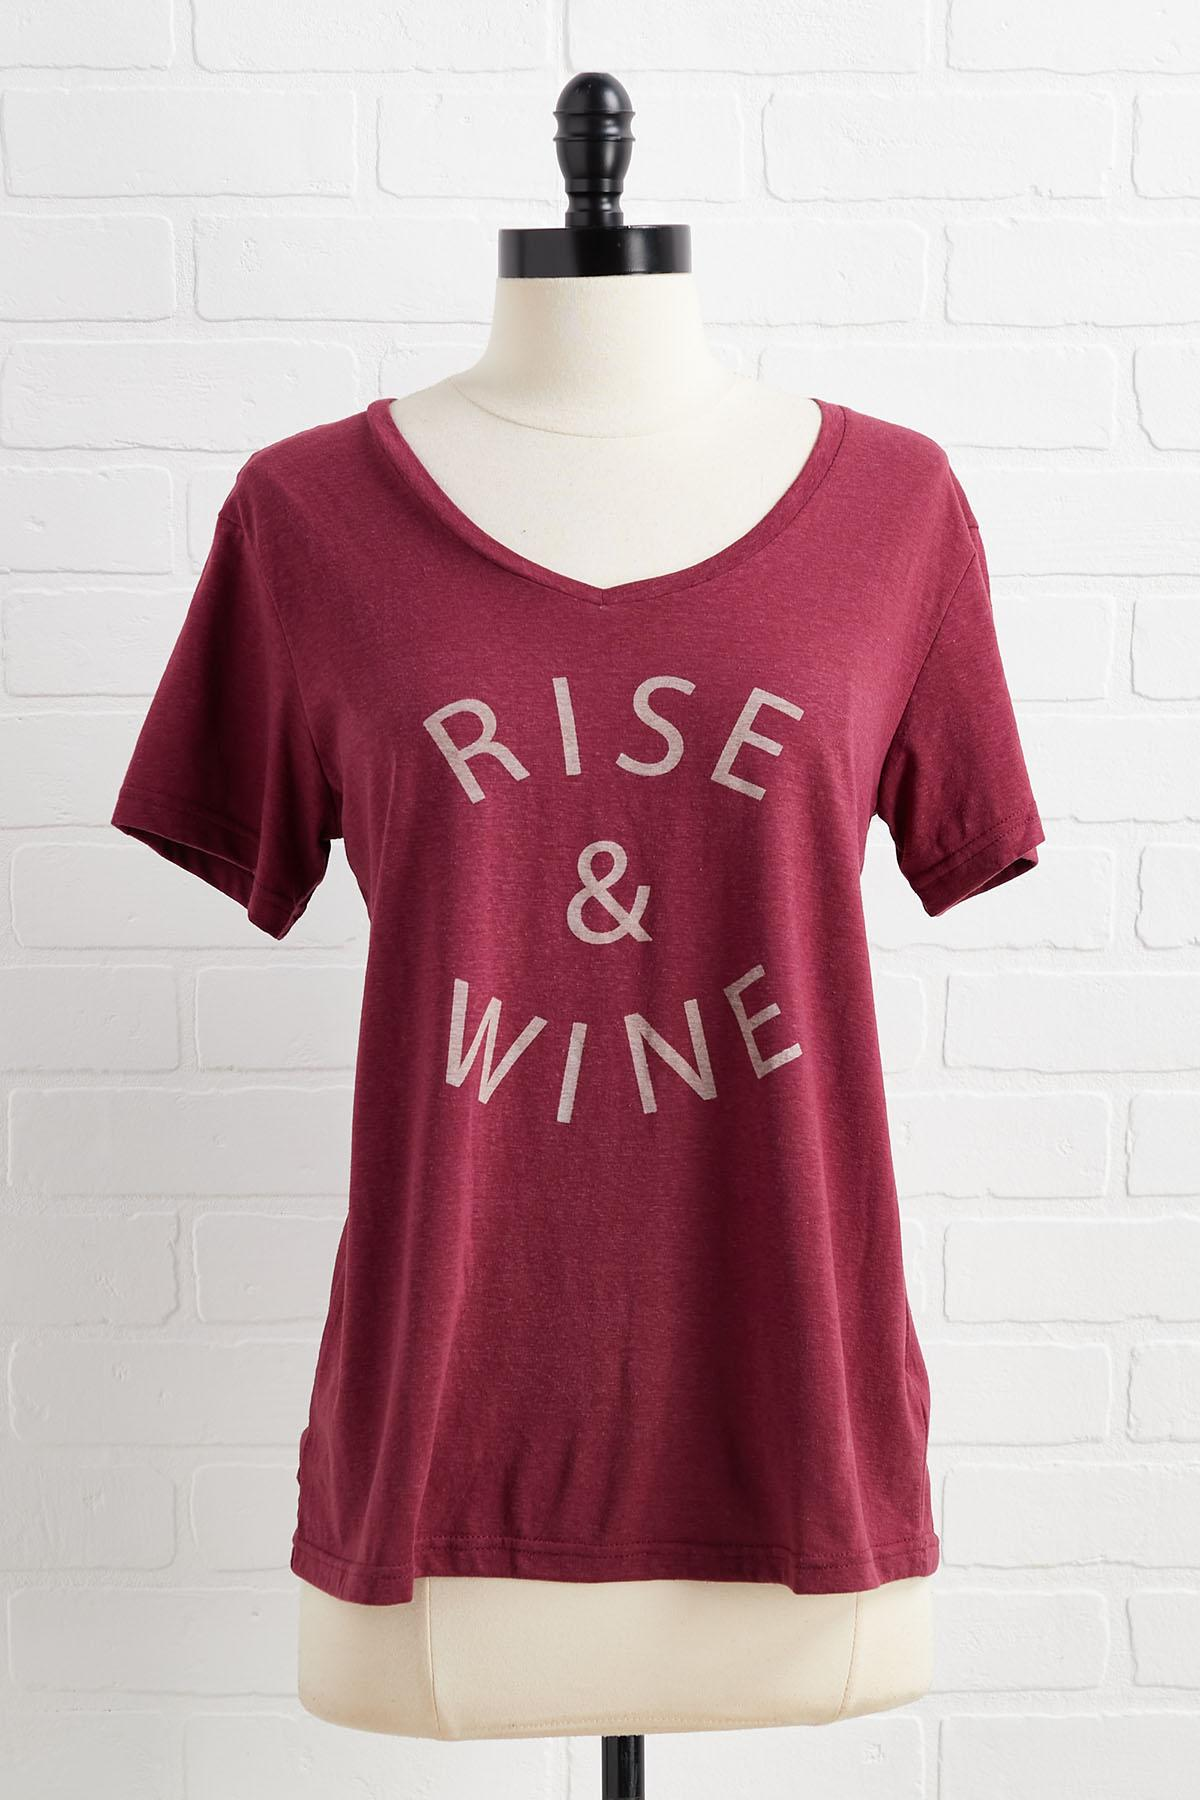 Rise And Wine Tee